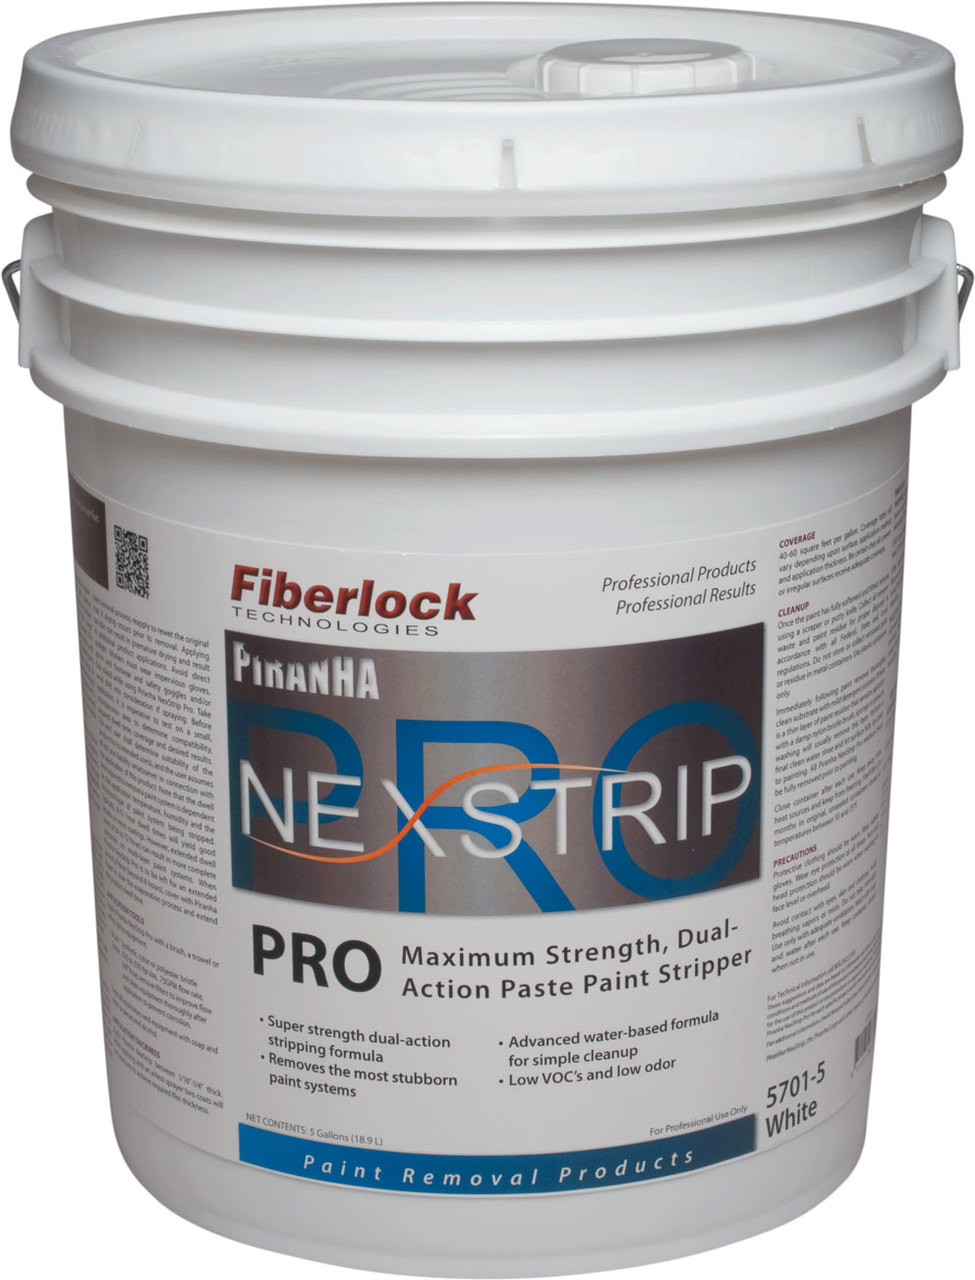 Paint Stripper Nexstrip Pro Low Voc Biodegradable Maximum Strength Dual Action Paste Paint Stripper